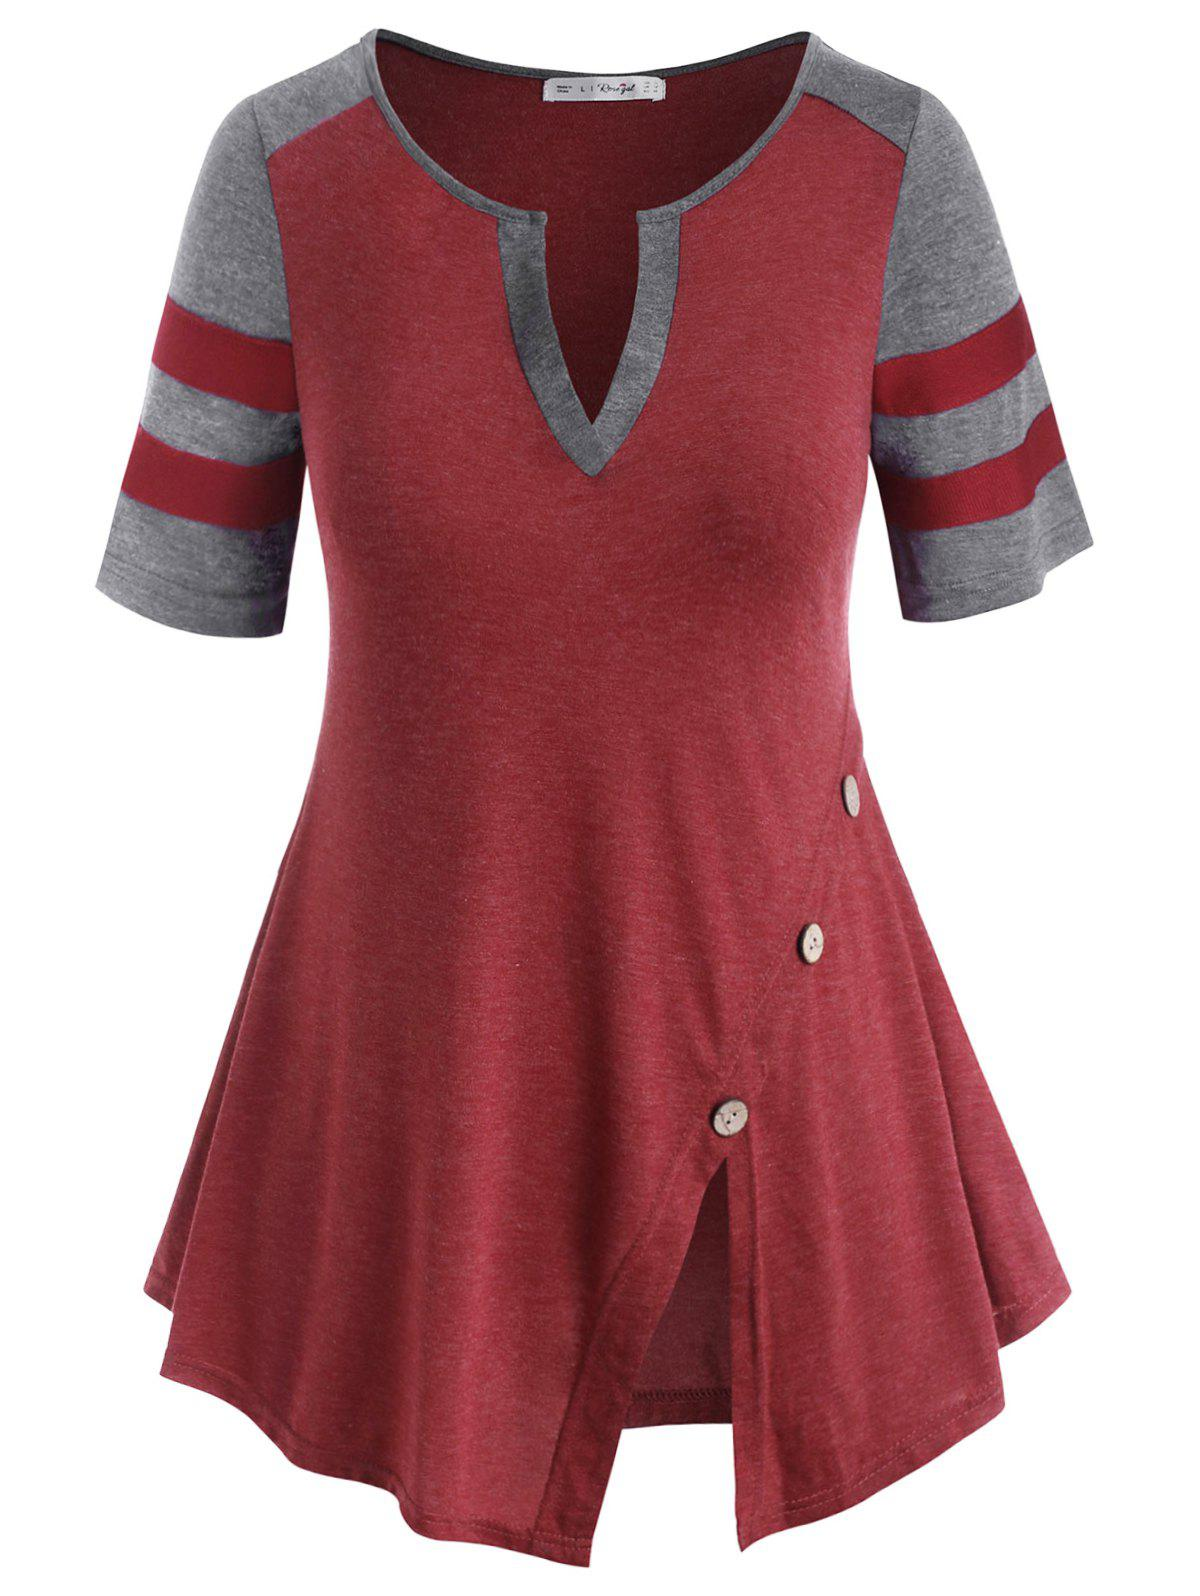 Colorblock Stripes Panel V-notched Buttoned Plus Size Top - RED WINE L